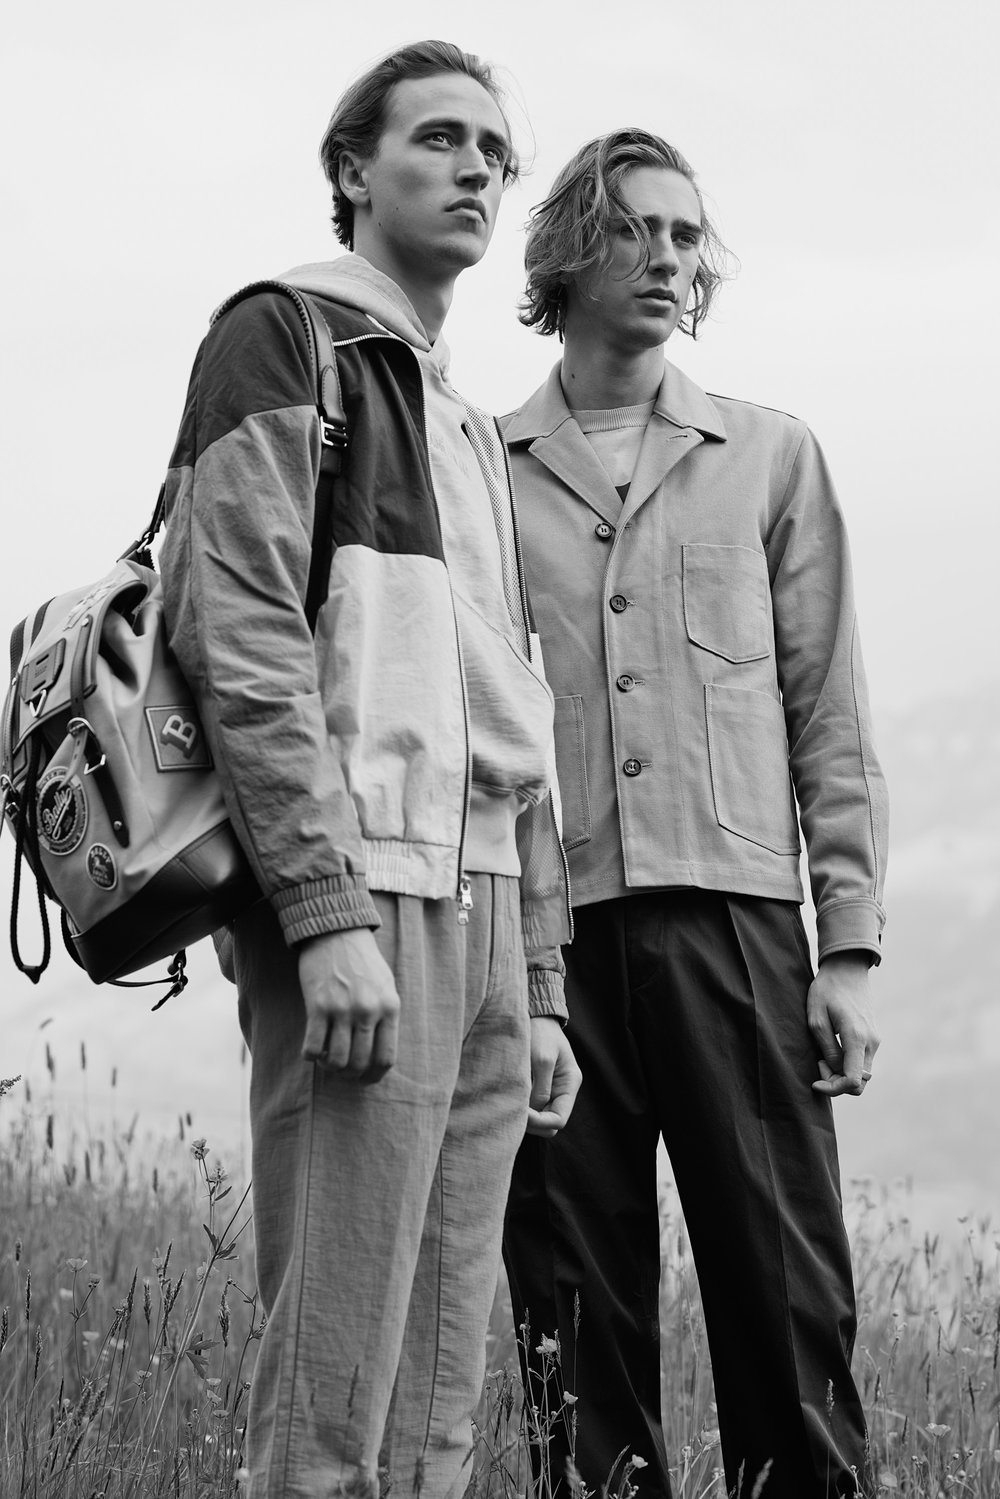 Moritz wears jacket and sweater by Aimé Leon Dore, trousers by Études and backpack by Bally. Oliver wears jacket by Acne Studios, sweater and trousers by Marni.